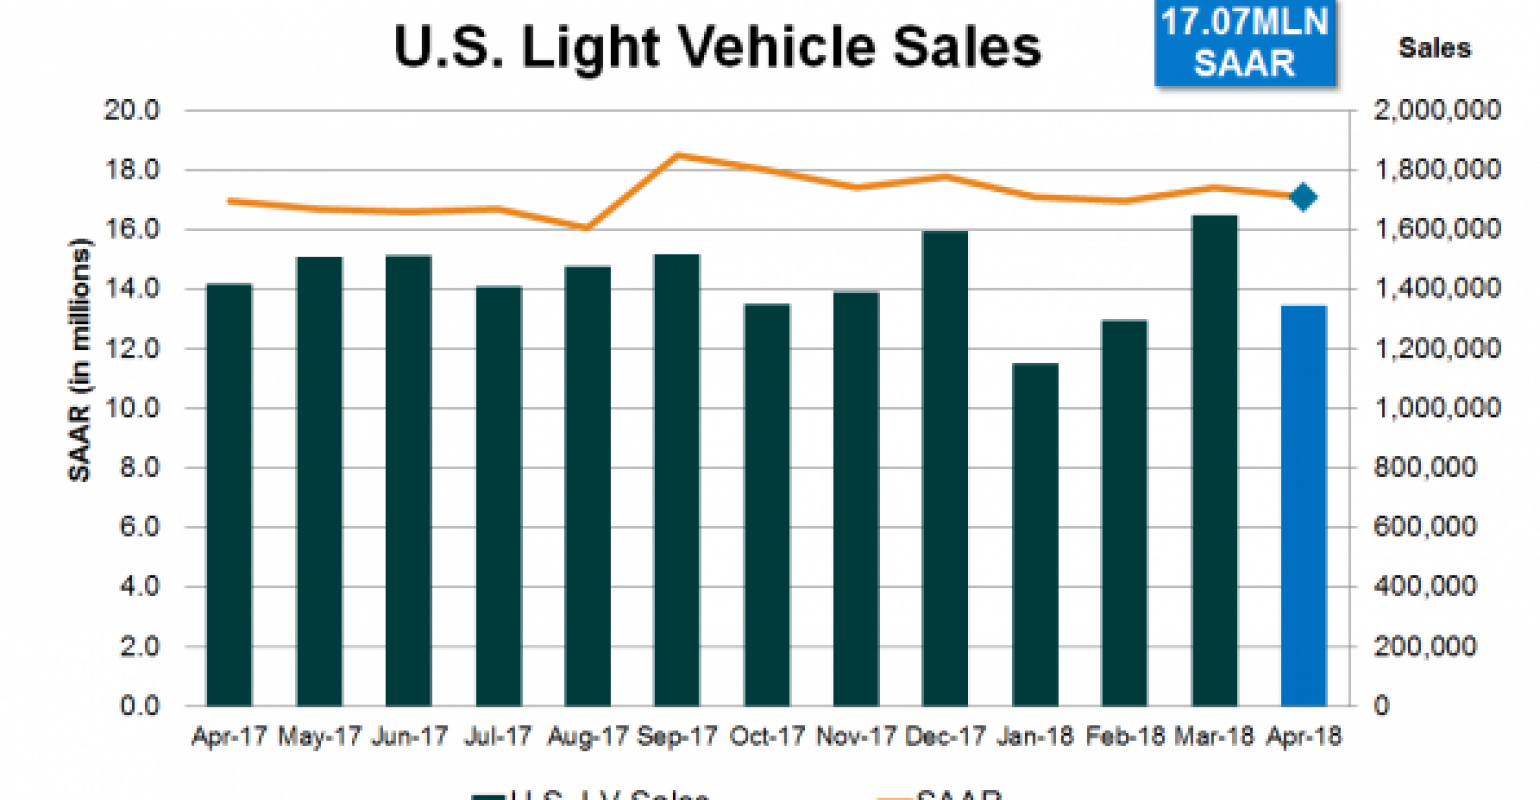 Us Vehicle Sales By Year >> U S Light Vehicle Sales Start Q2 With Strong Results Wardsauto